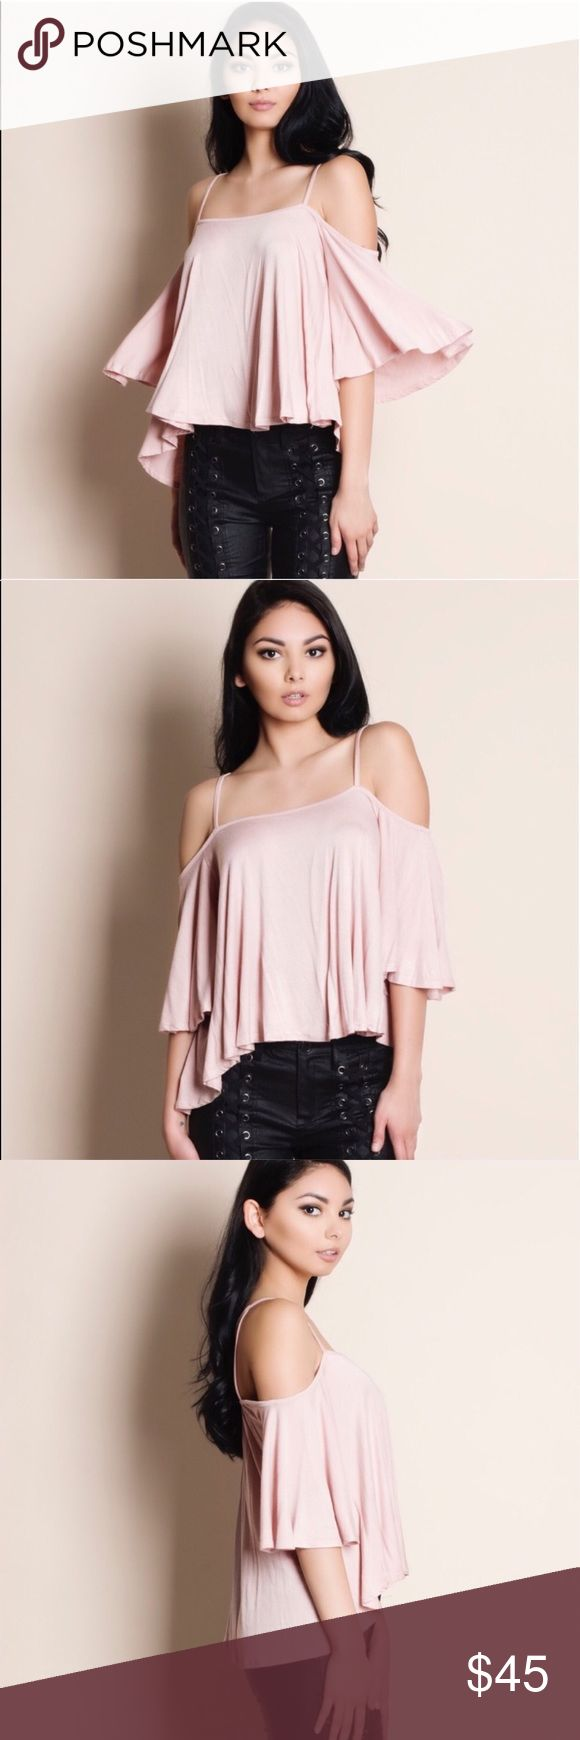 🆕DEBBIE off shoulder flutter top - MAUVE arling & oh so perfect for some fun in the sun! Loose fit flutter sleeve top, cold shoulder.   Also available in TAUPE, black, wine.   🚨PRICE FIRM🚨 Bellanblue Tops Blouses